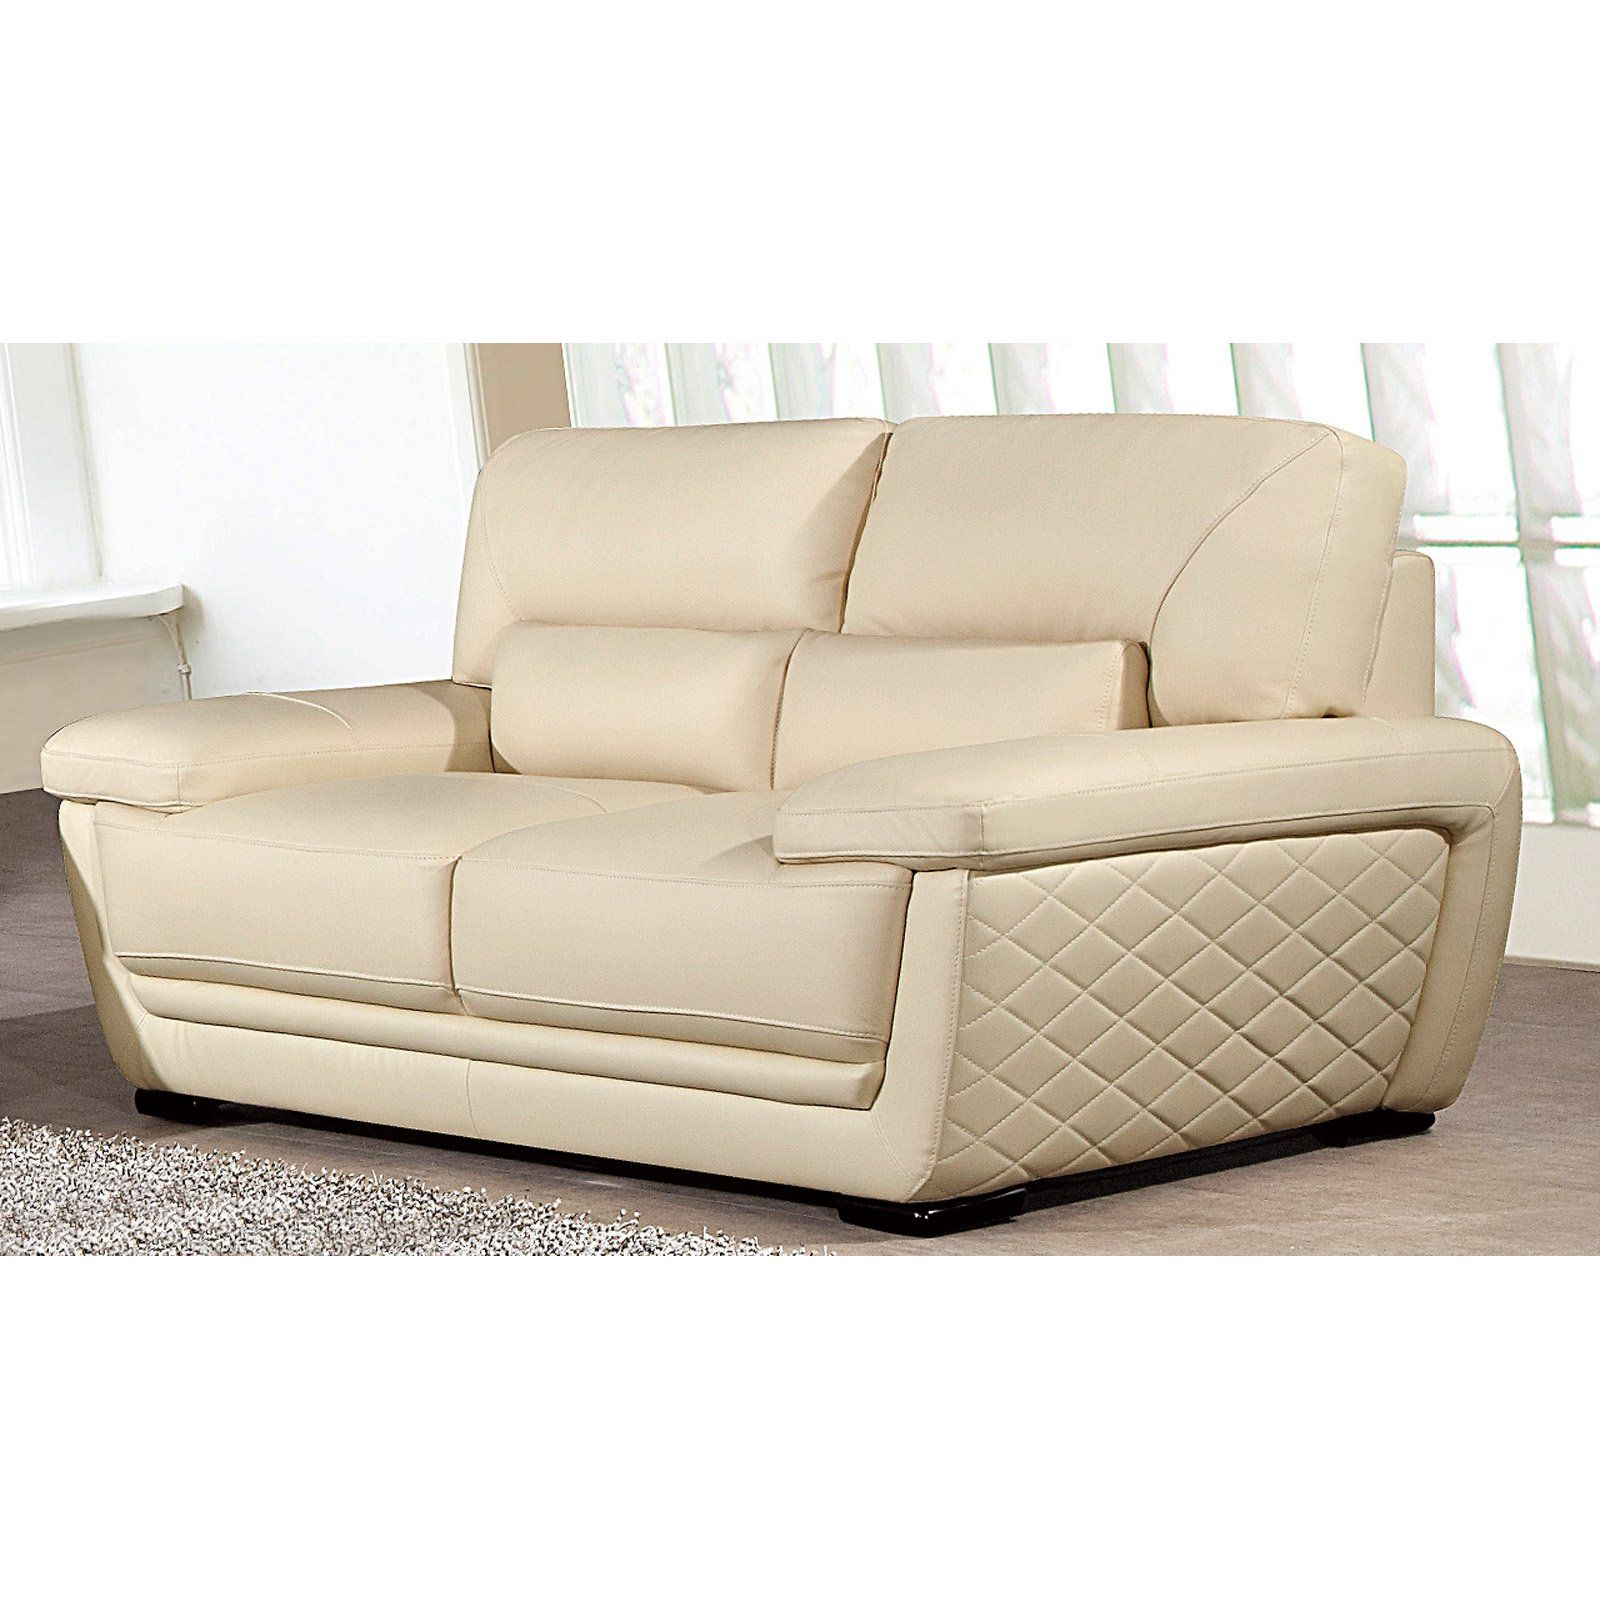 American Eagle Furniture Georgiana Leather Beige: American Eagle Furniture Emma Loveseat With Pillow Top